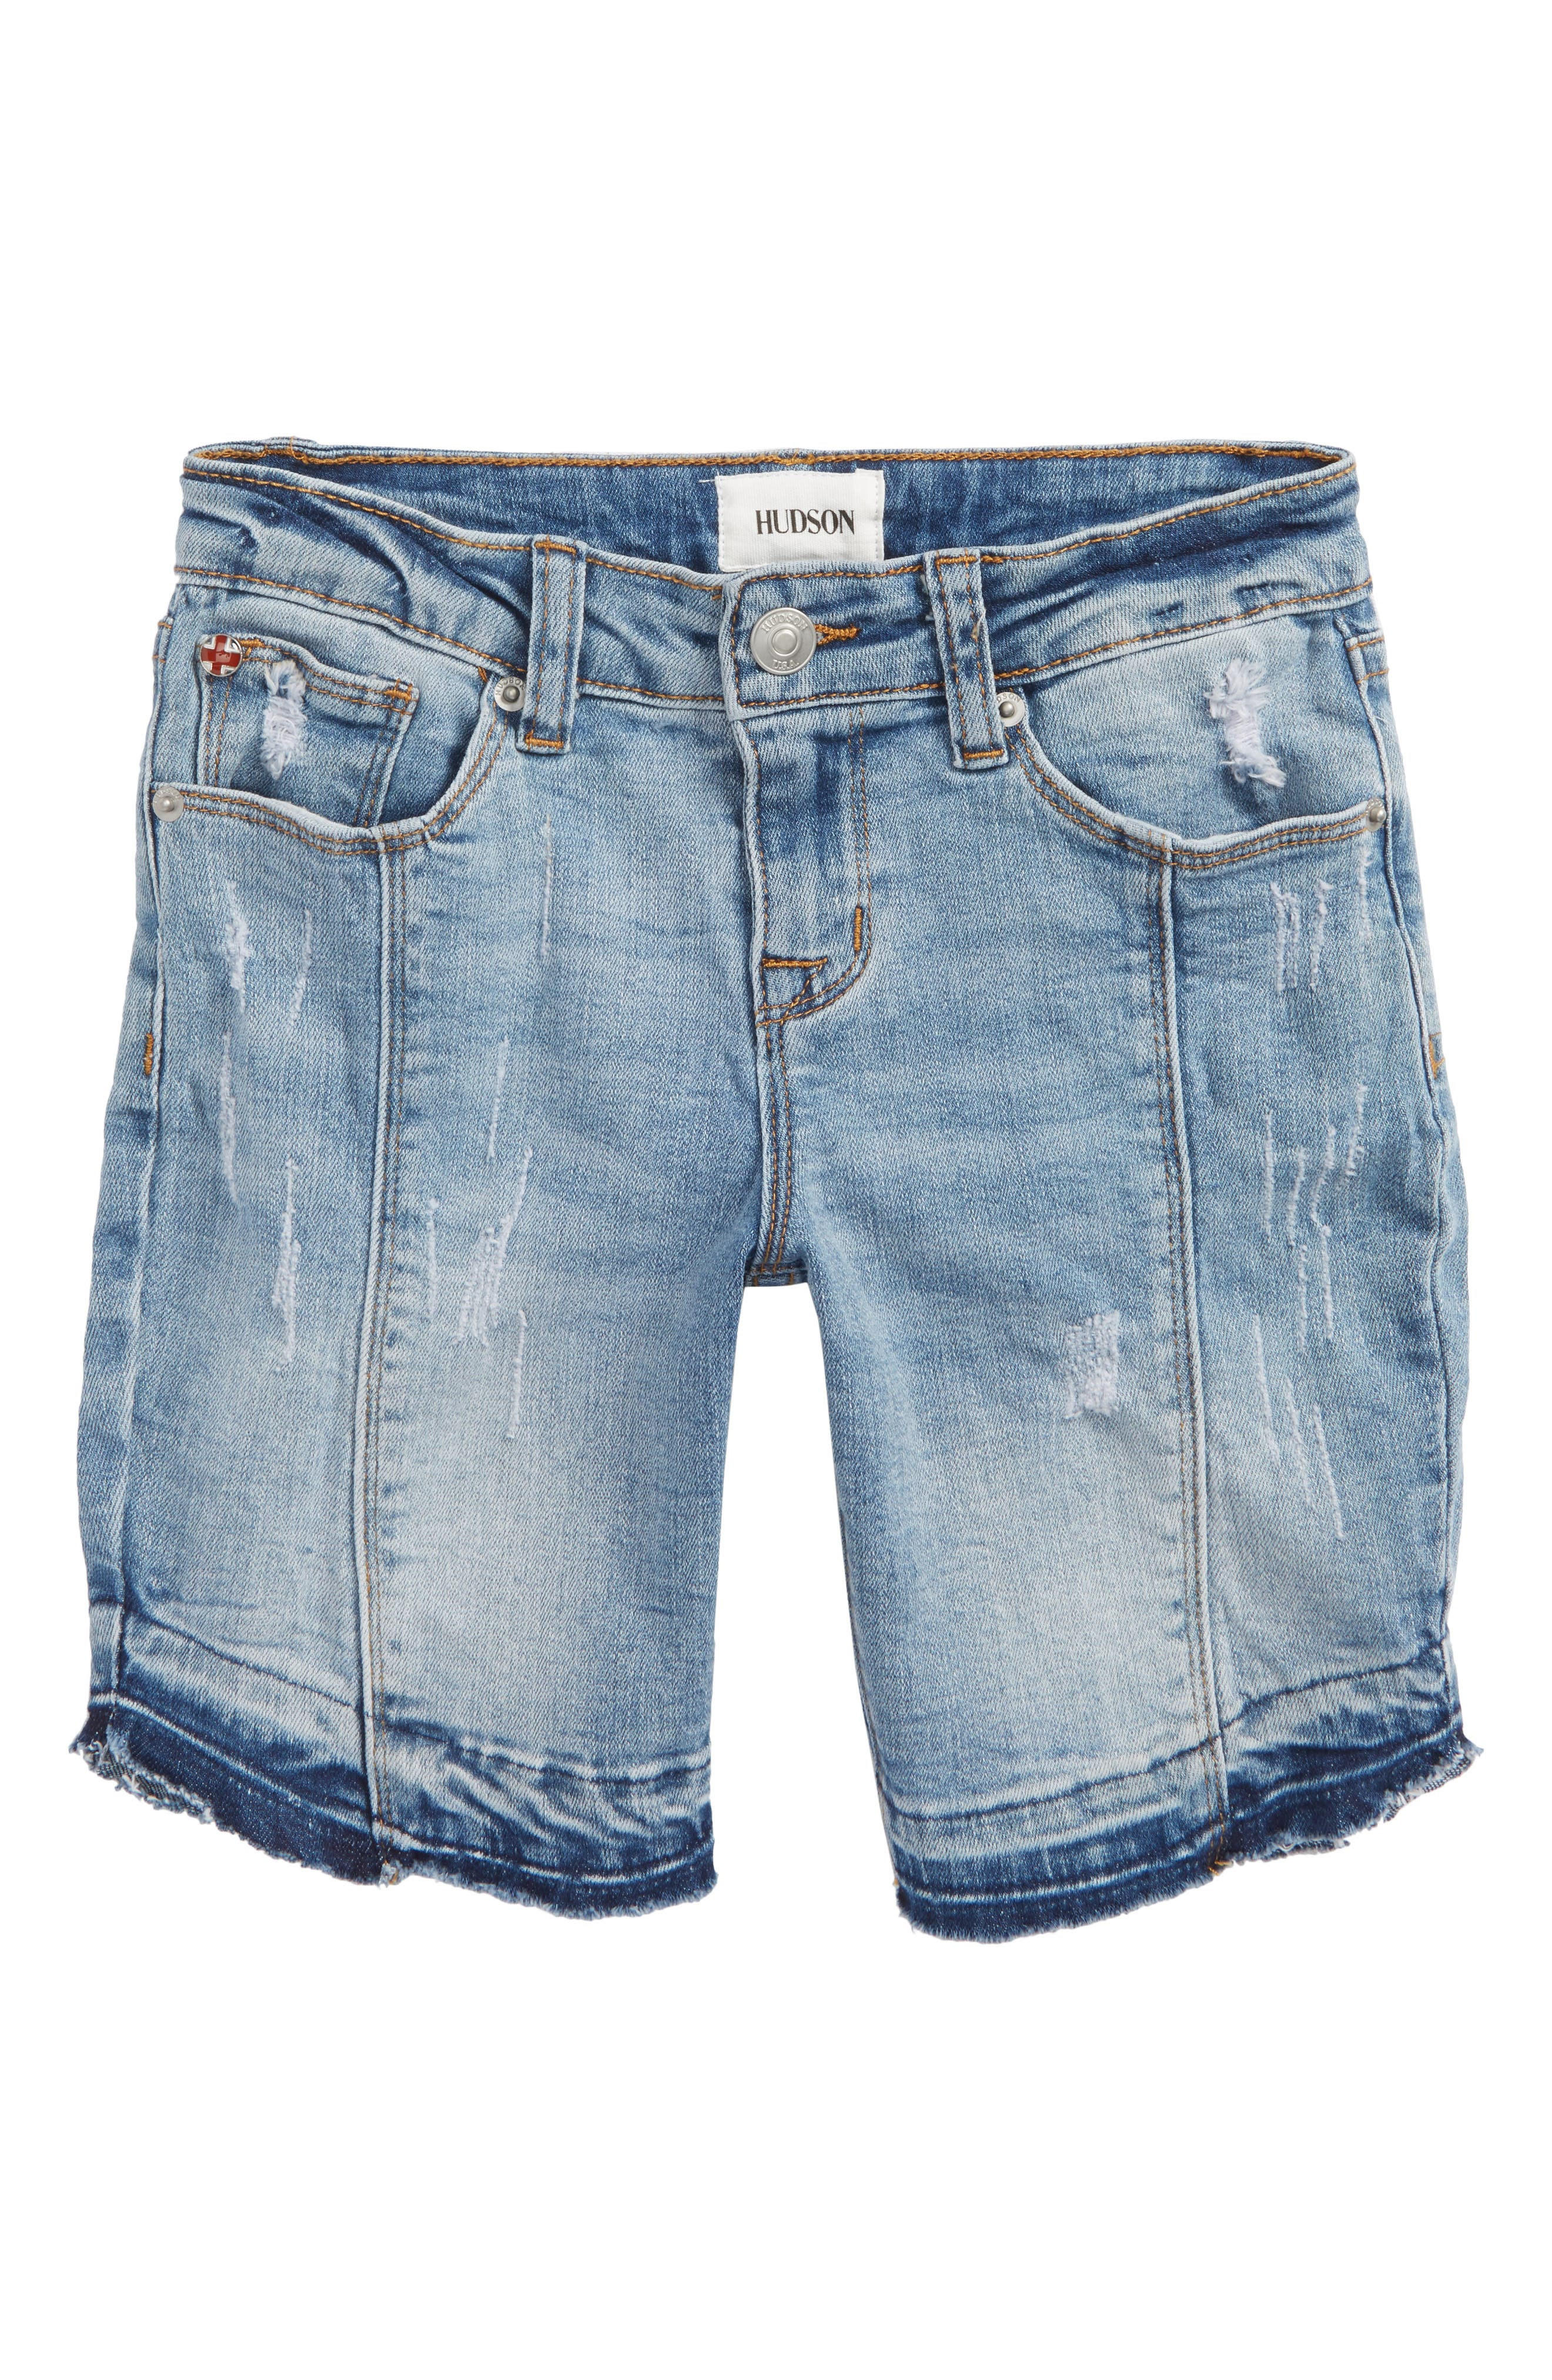 Release Hem Distressed Denim Shorts,                             Main thumbnail 1, color,